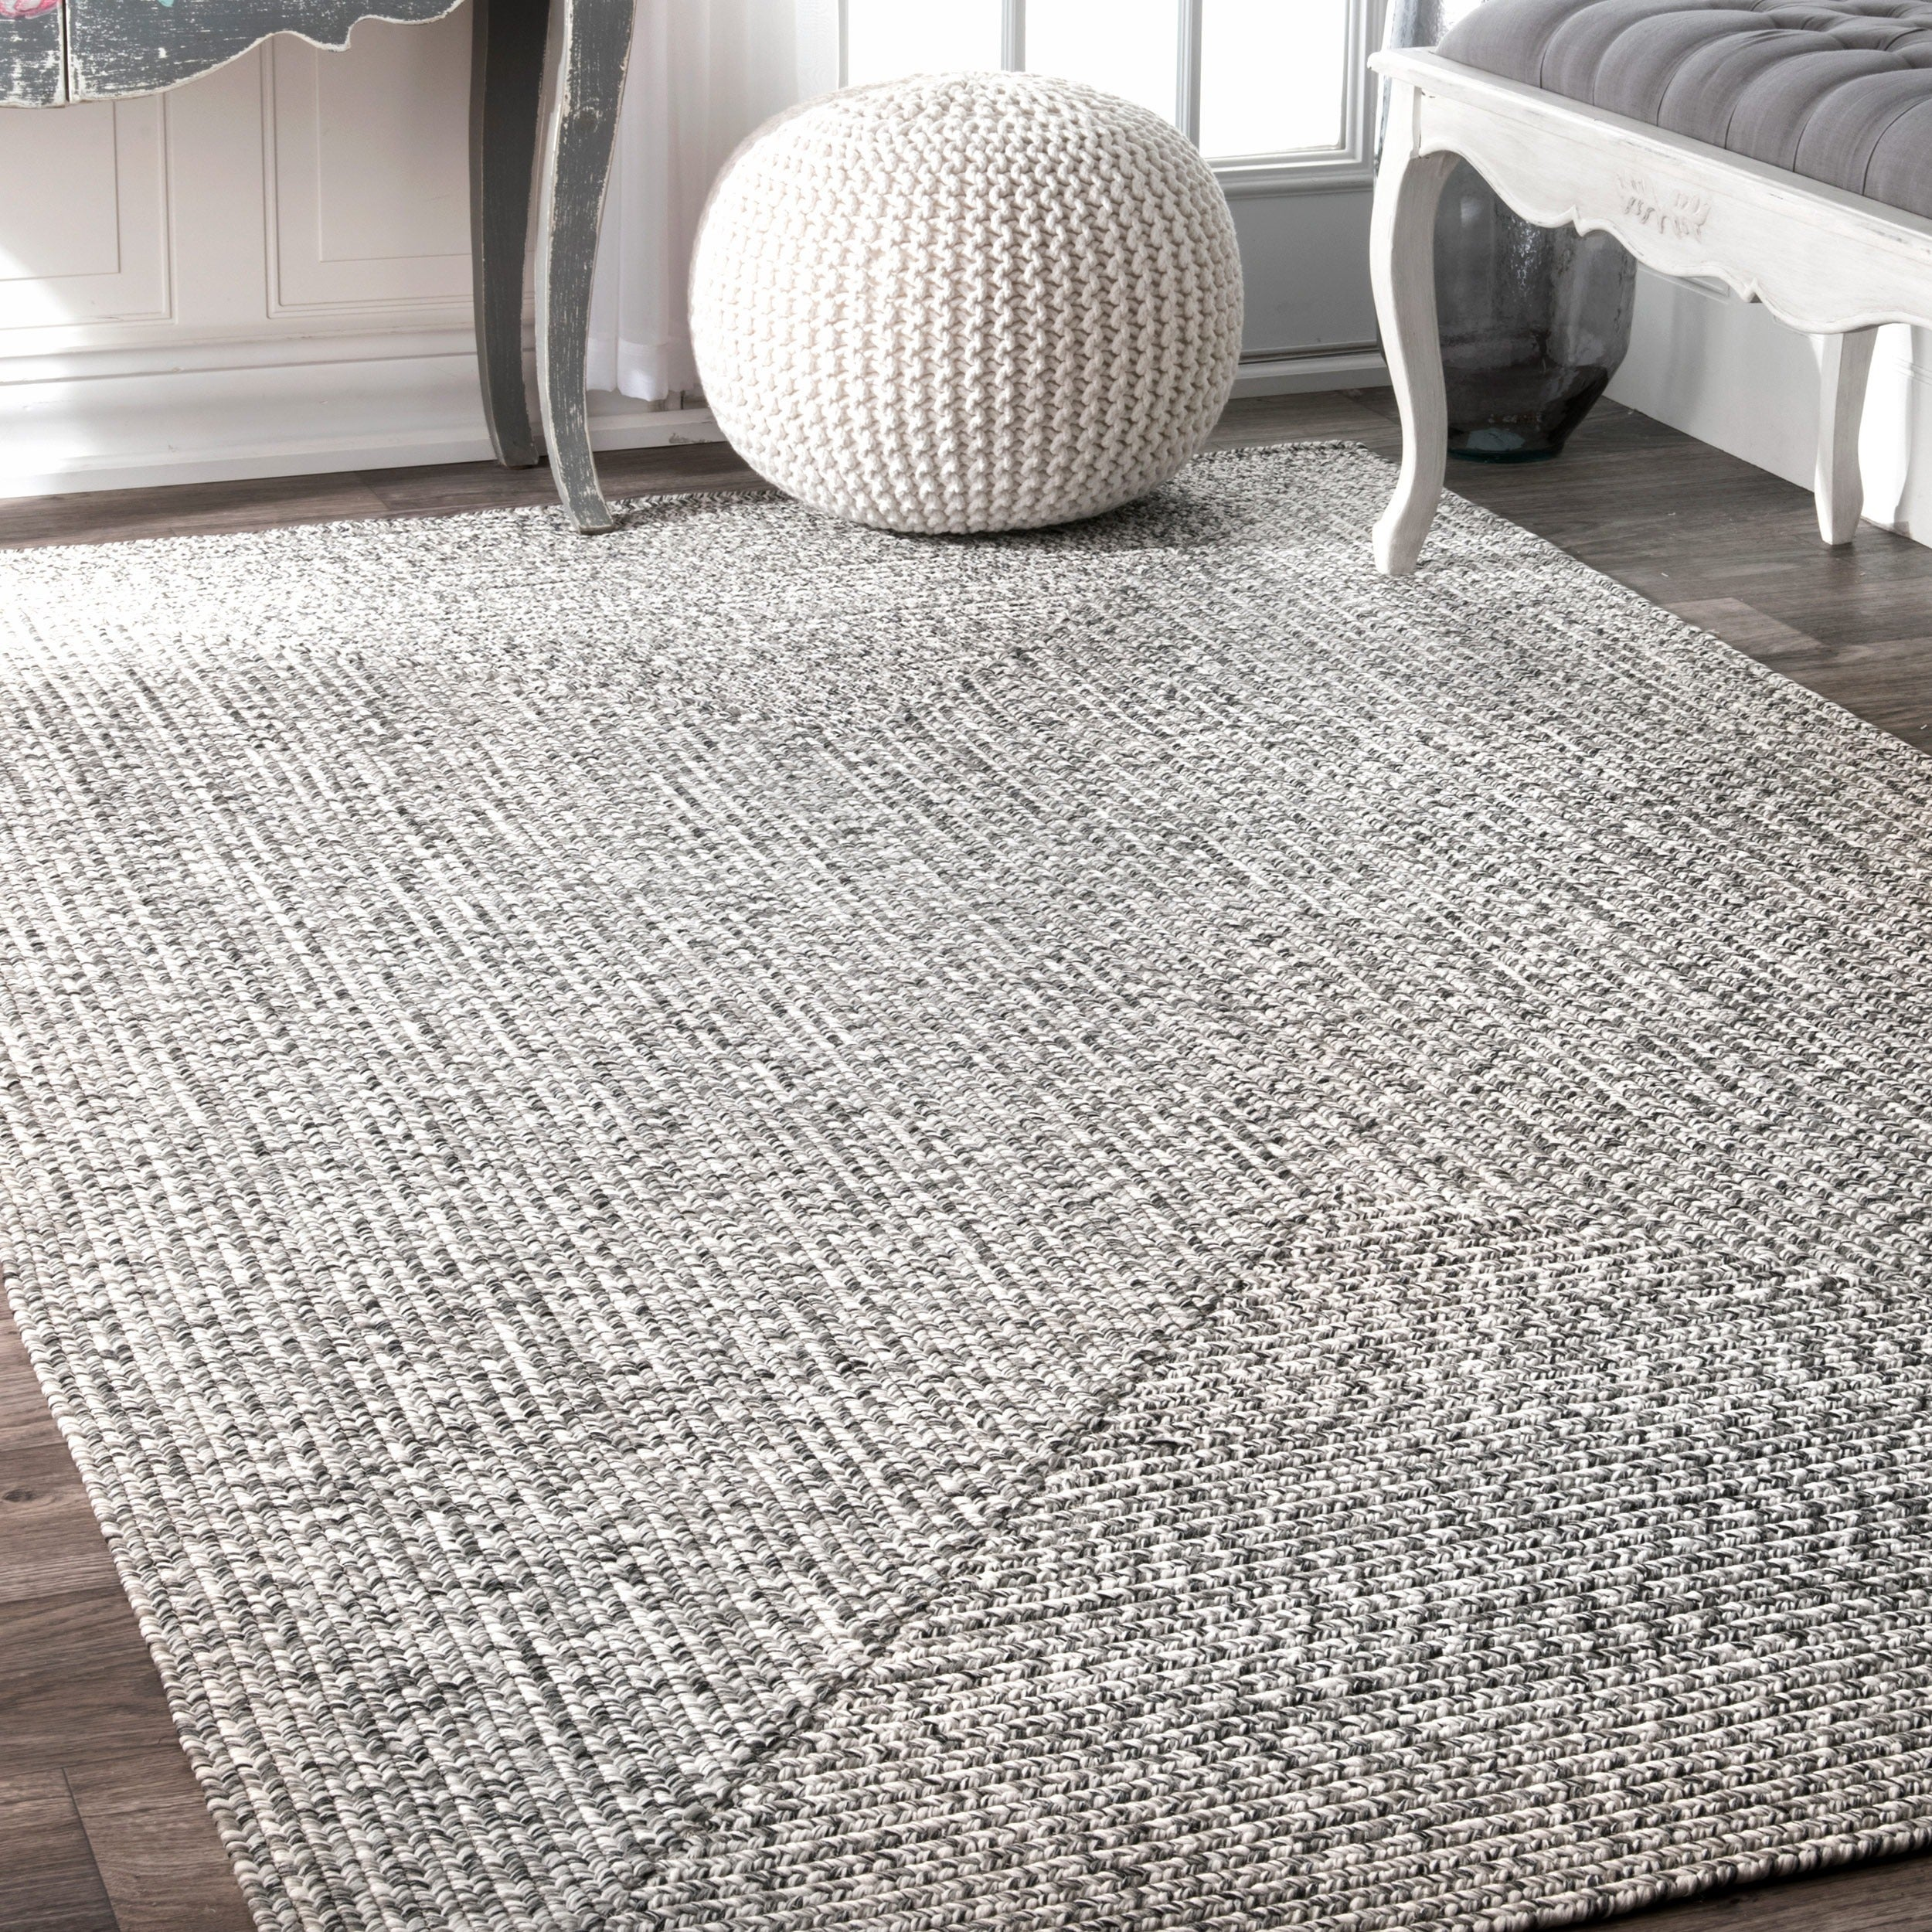 Nuloom Handmade Casual Solid Braided Rug 5 X 8 On Free Shipping Today Com 20701811